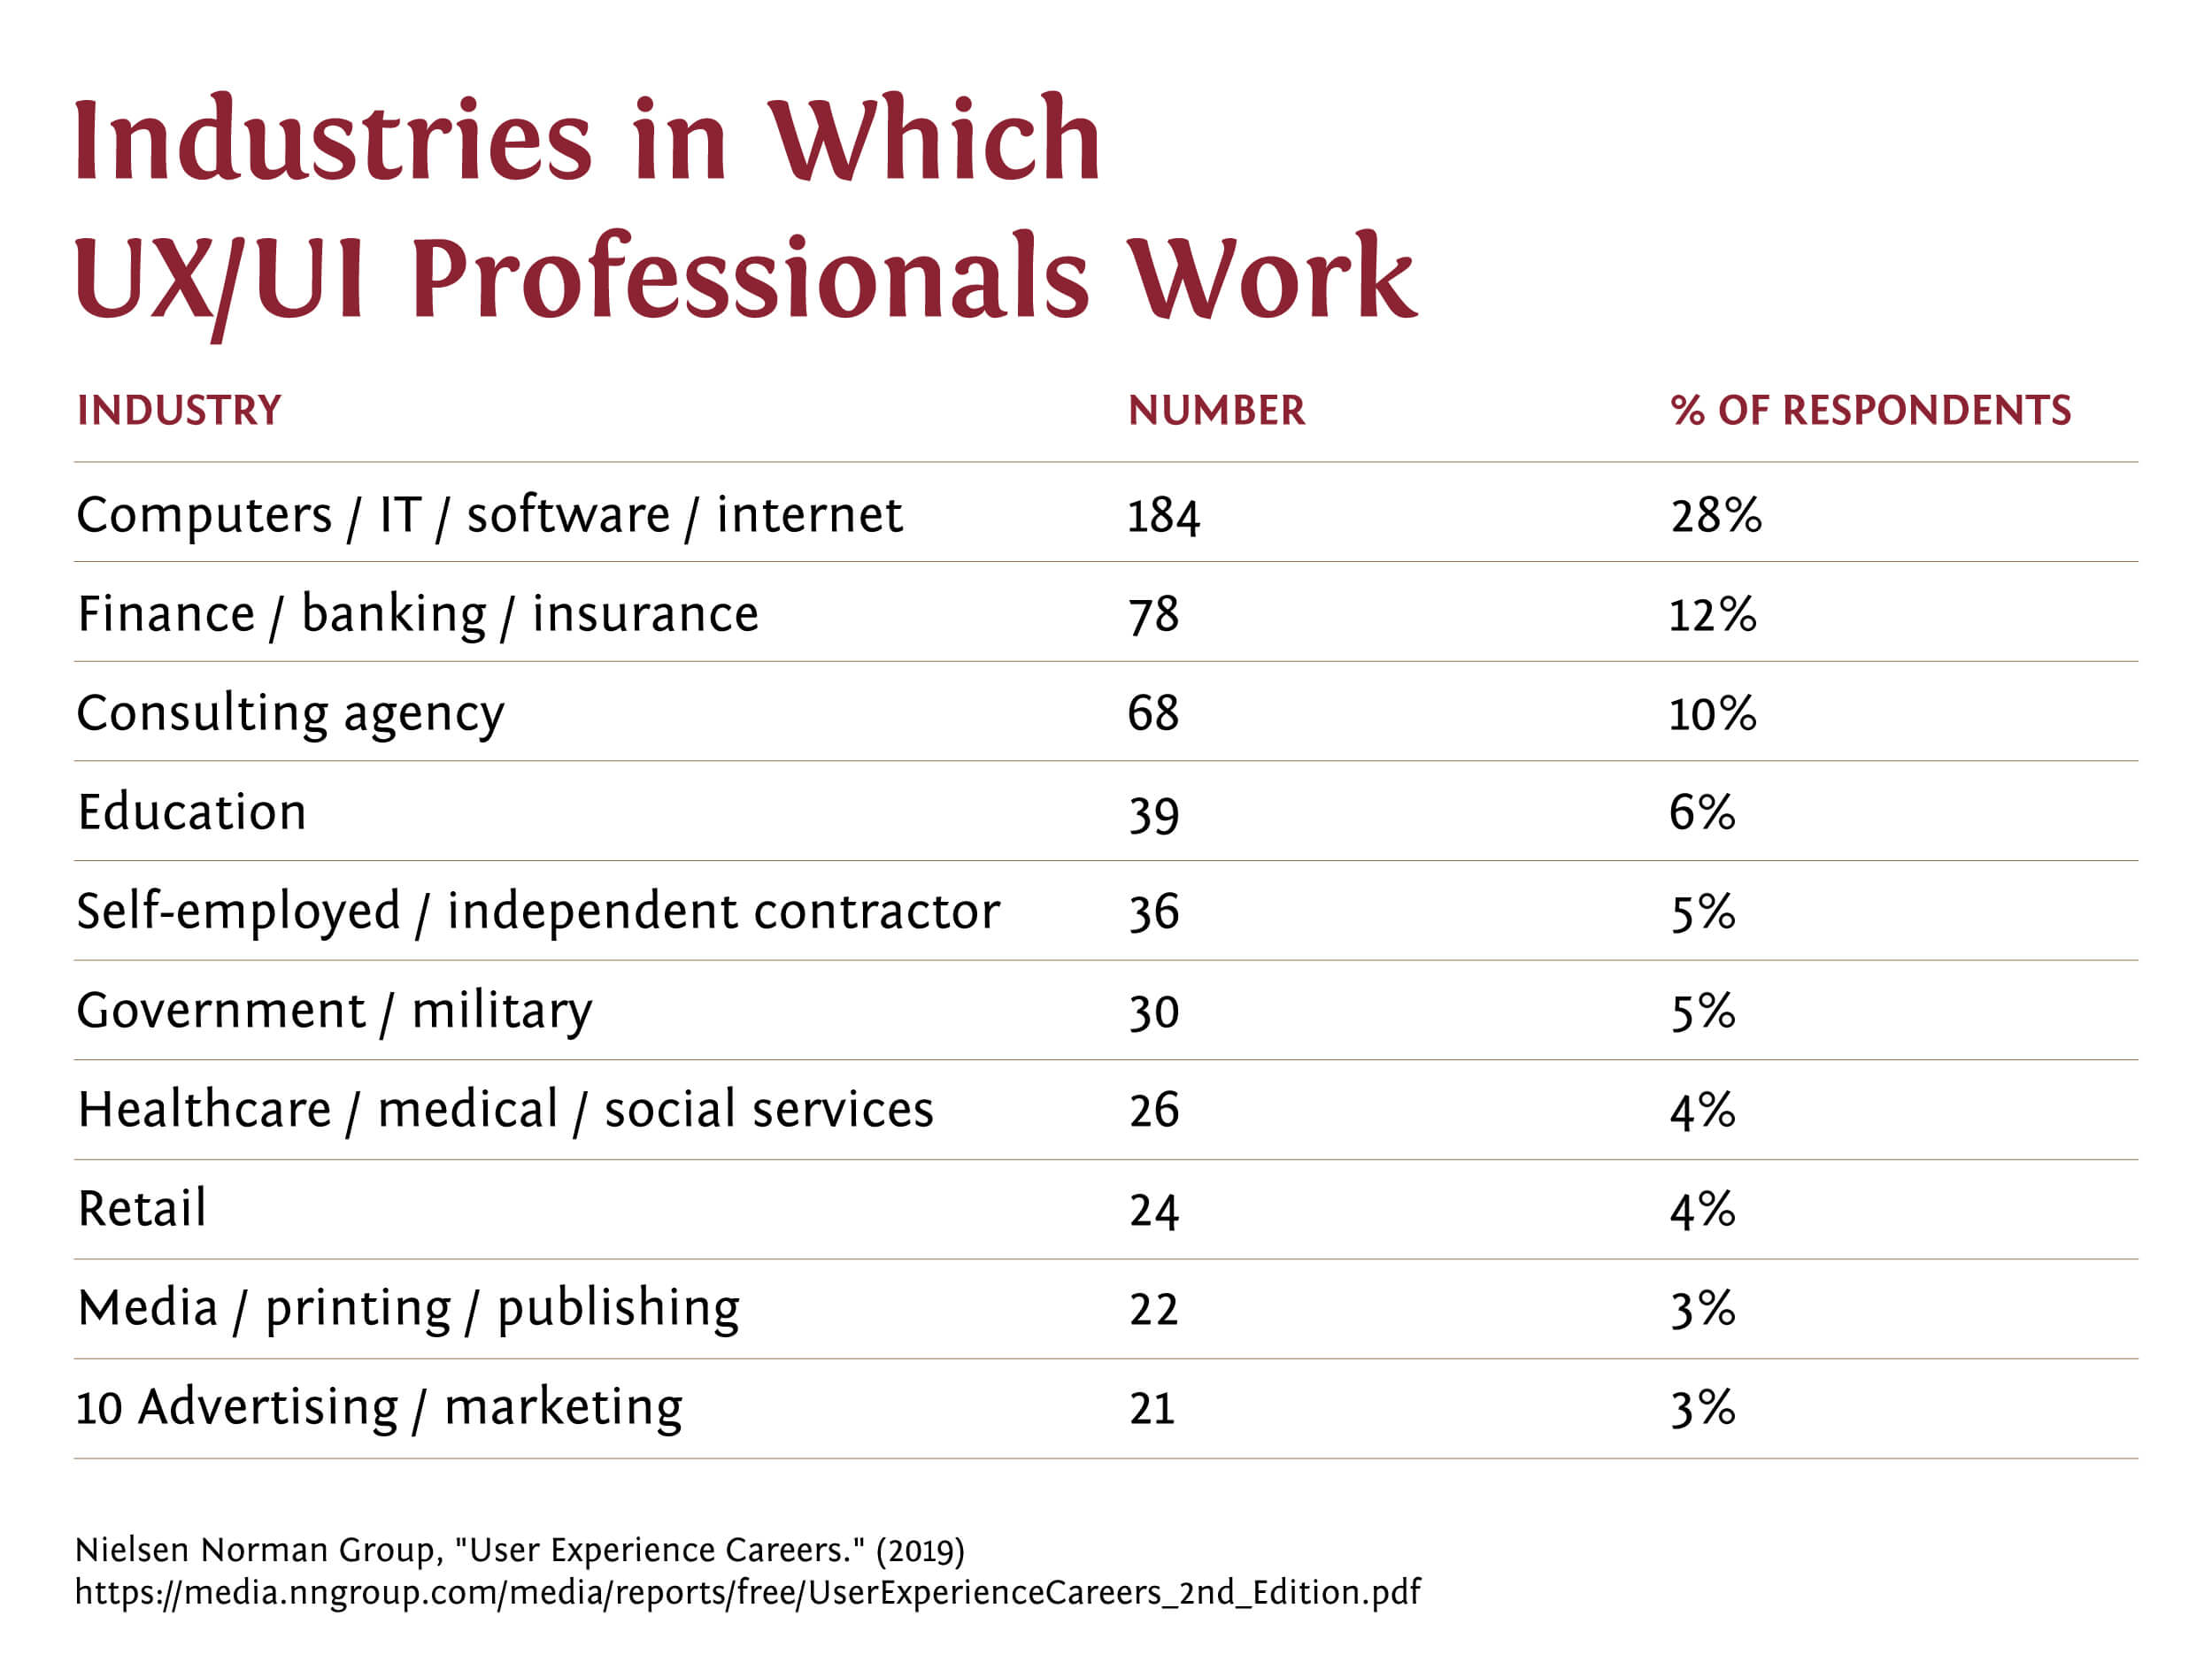 The most popular industries in which UI and UX professionals work